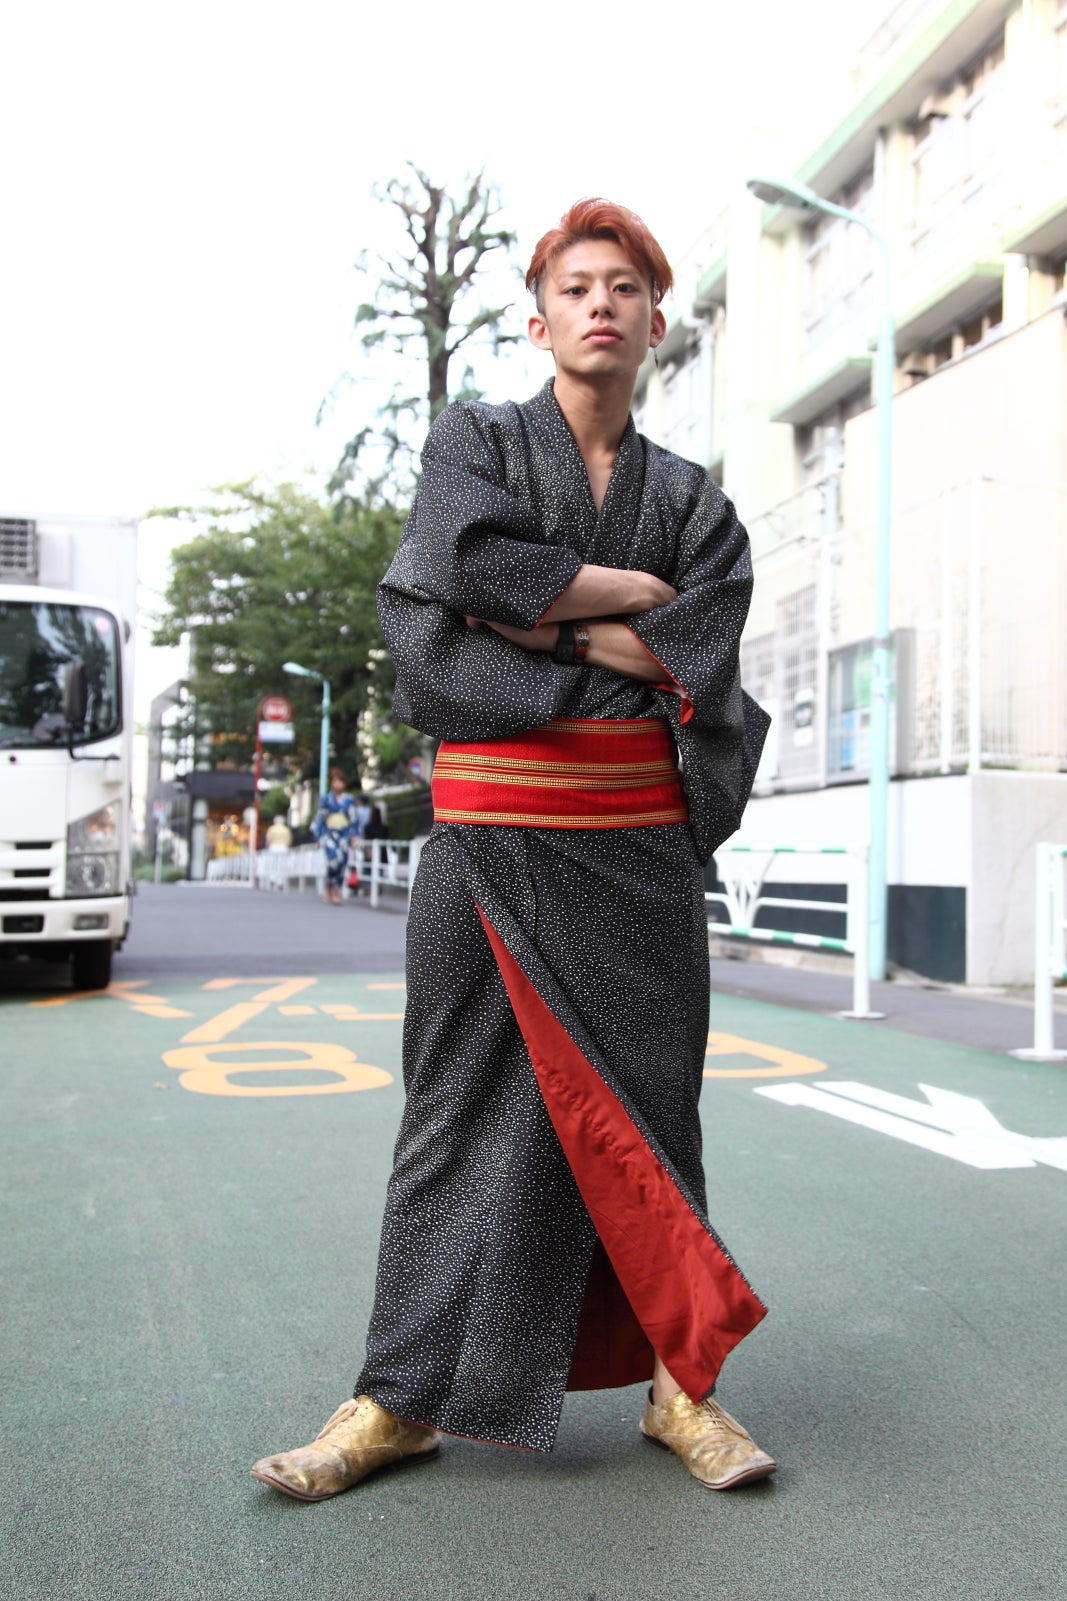 traditional ese clothing tokyo street style being a shop assistant be yuto s day job but this pose suggests he s got some real modeling chops